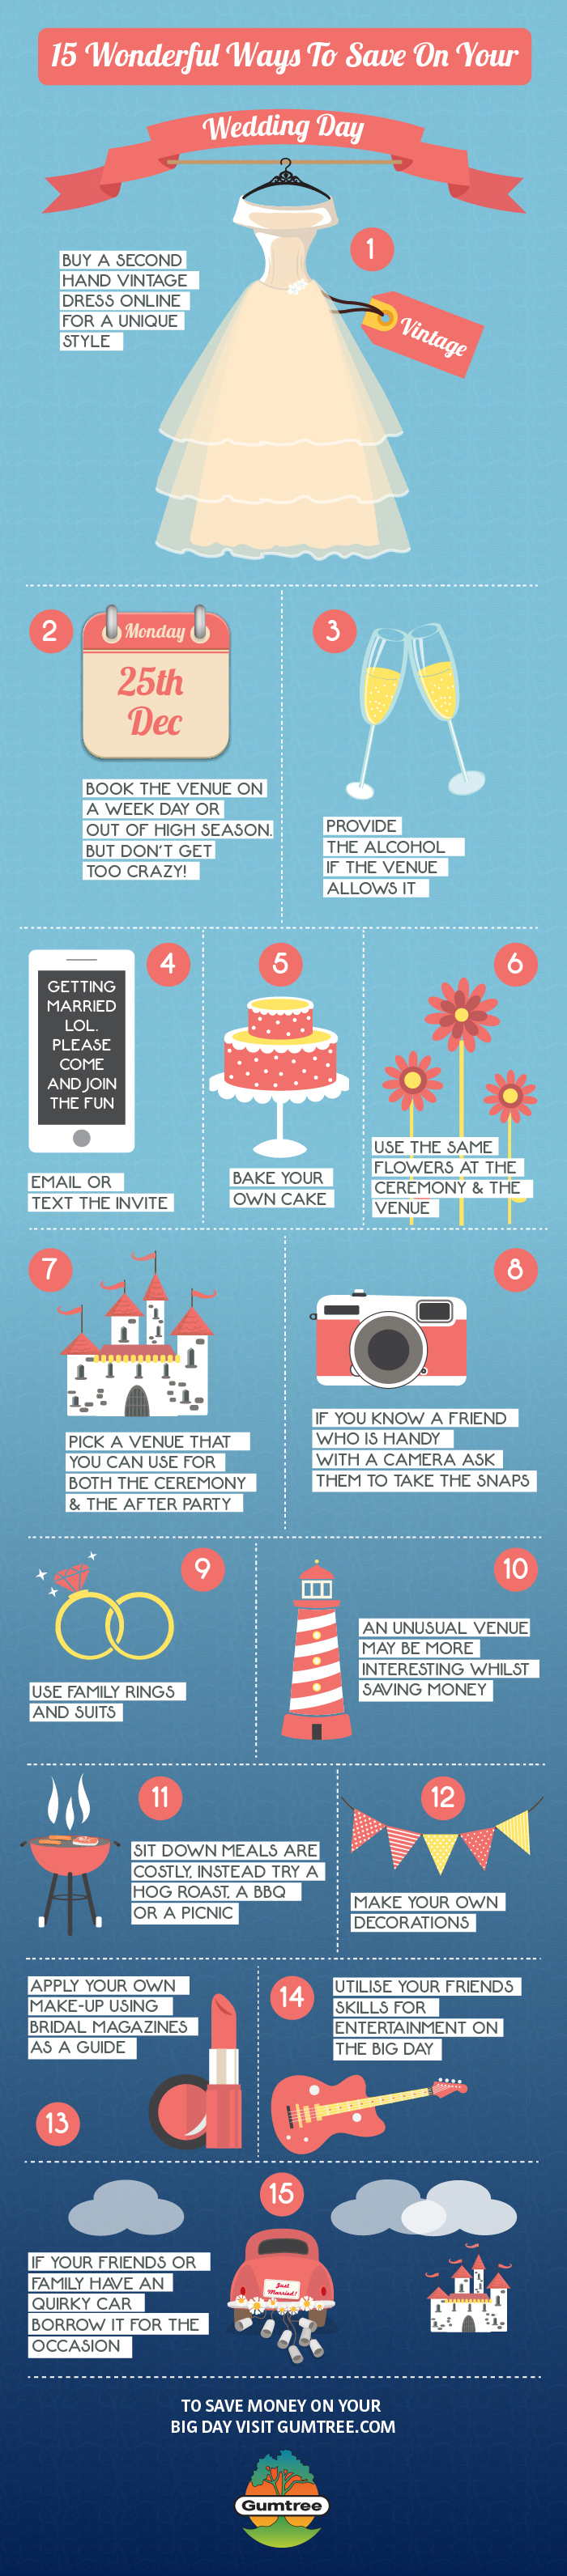 15 Money Saving Tips For Your Wedding Day